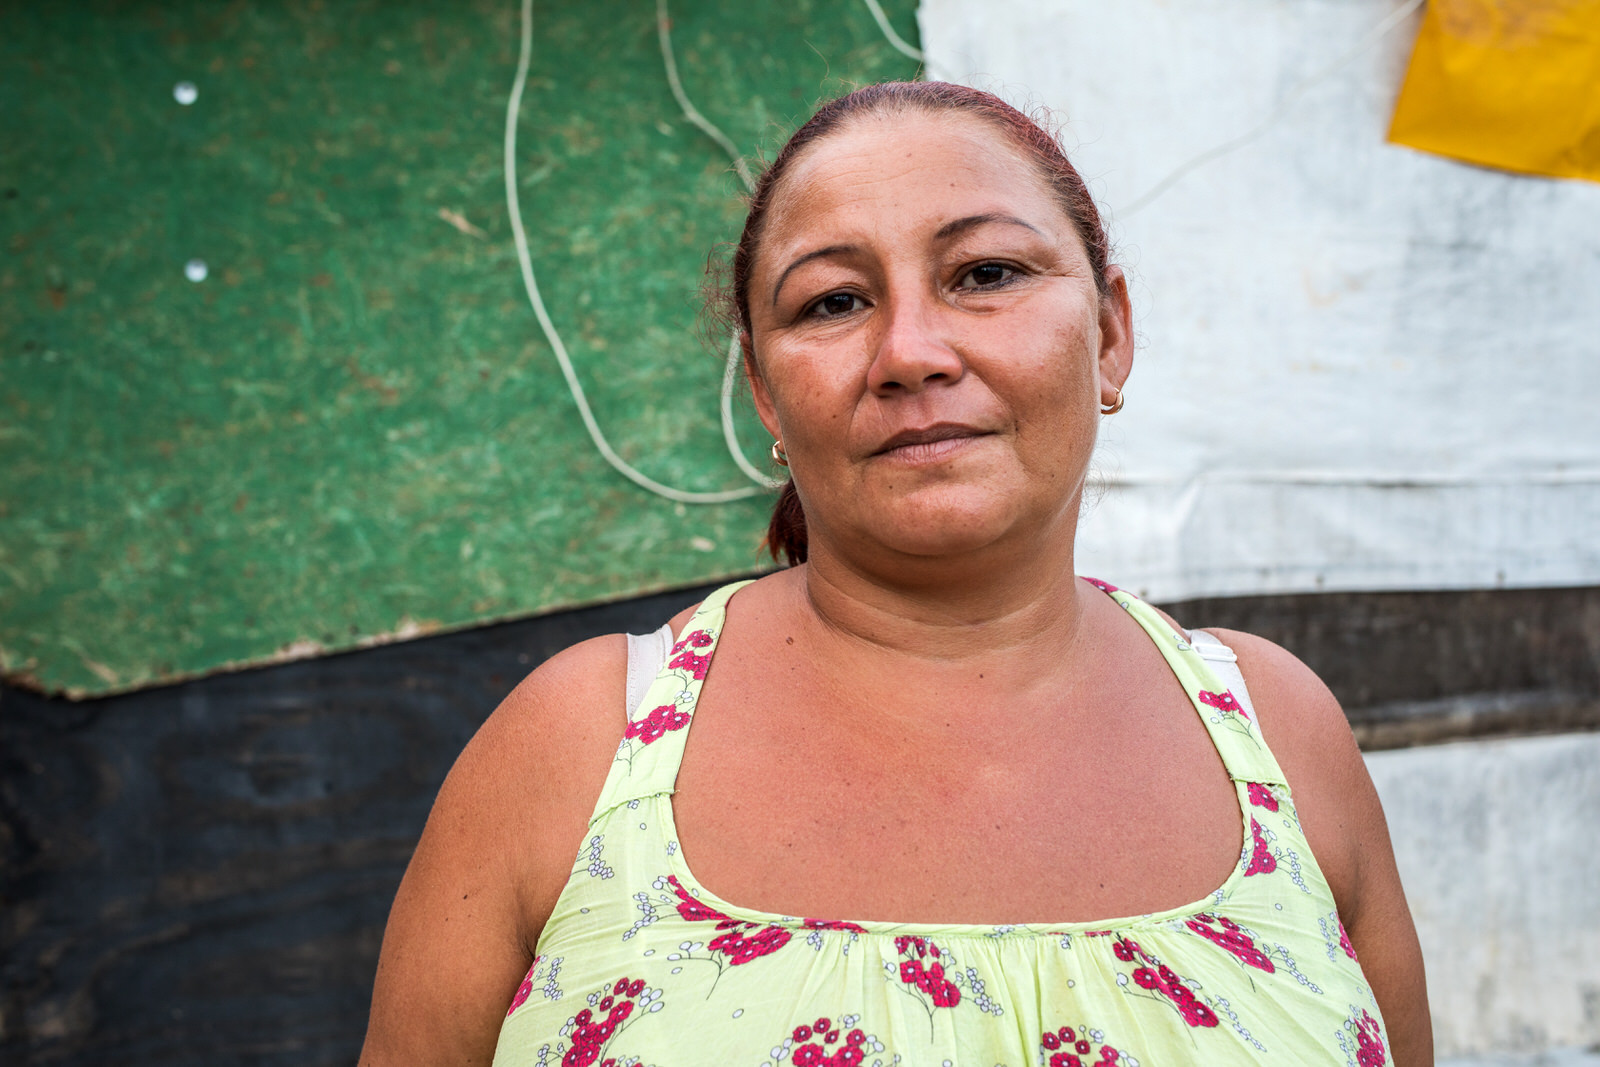 Maria Lucianne Lobato Ferreira (Lôra), a leader from Guerreira Maria and state coordinator for MSTB. Lôra says she doesn't feel that she has the right to the city.